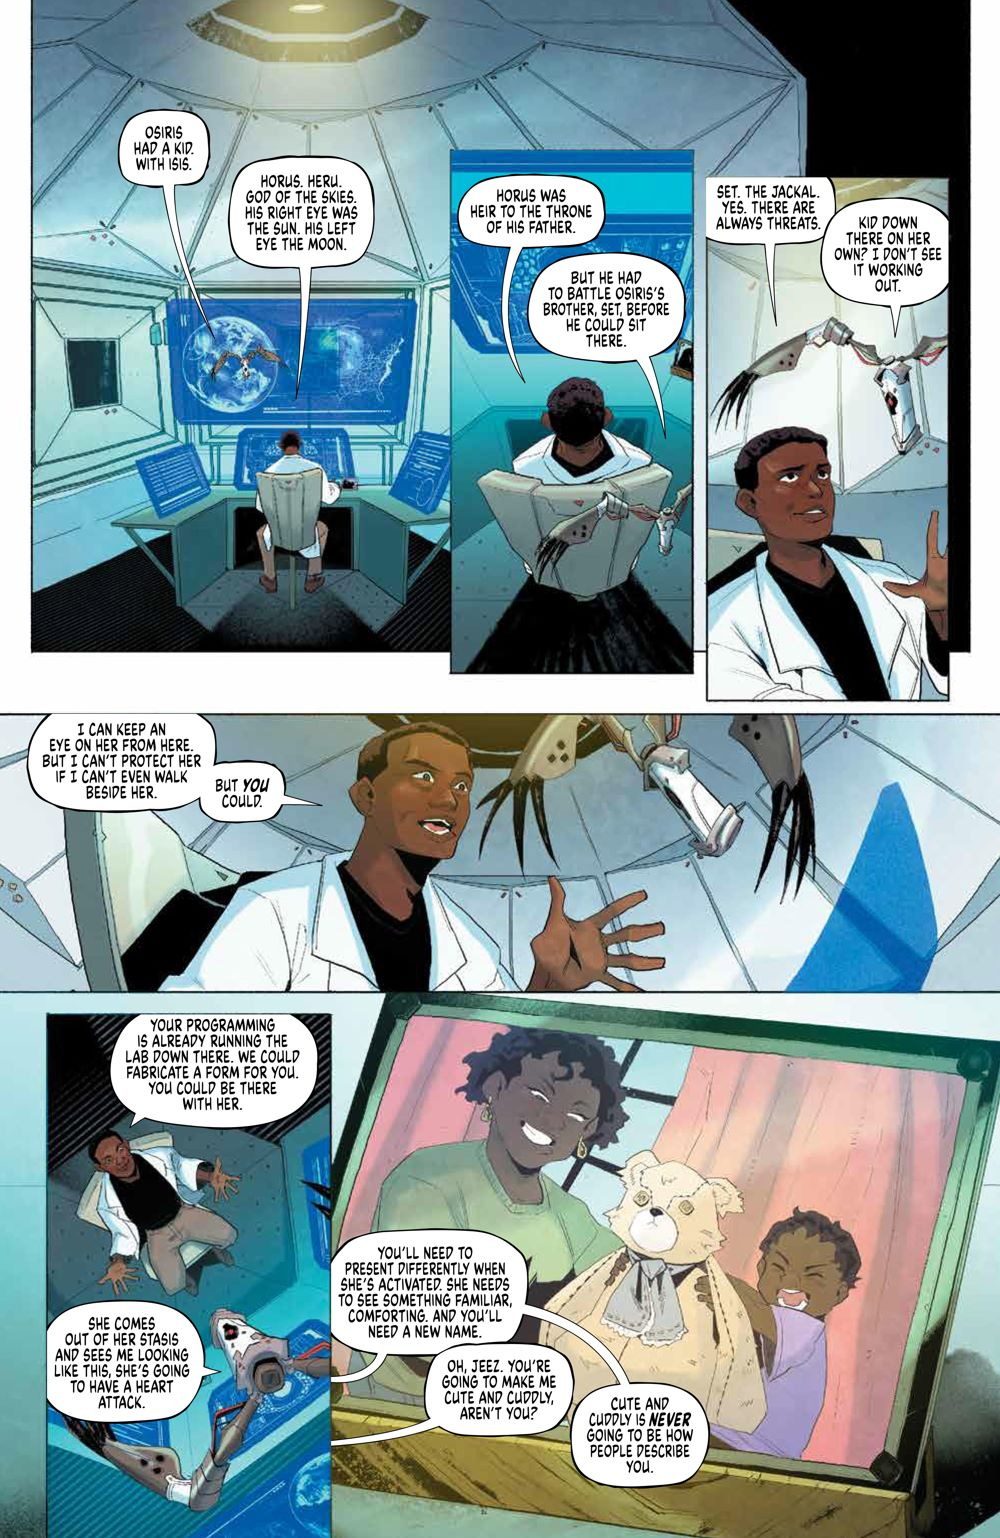 Eve_002_PRESS_7-1 ComicList Previews: EVE #2 (OF 5)